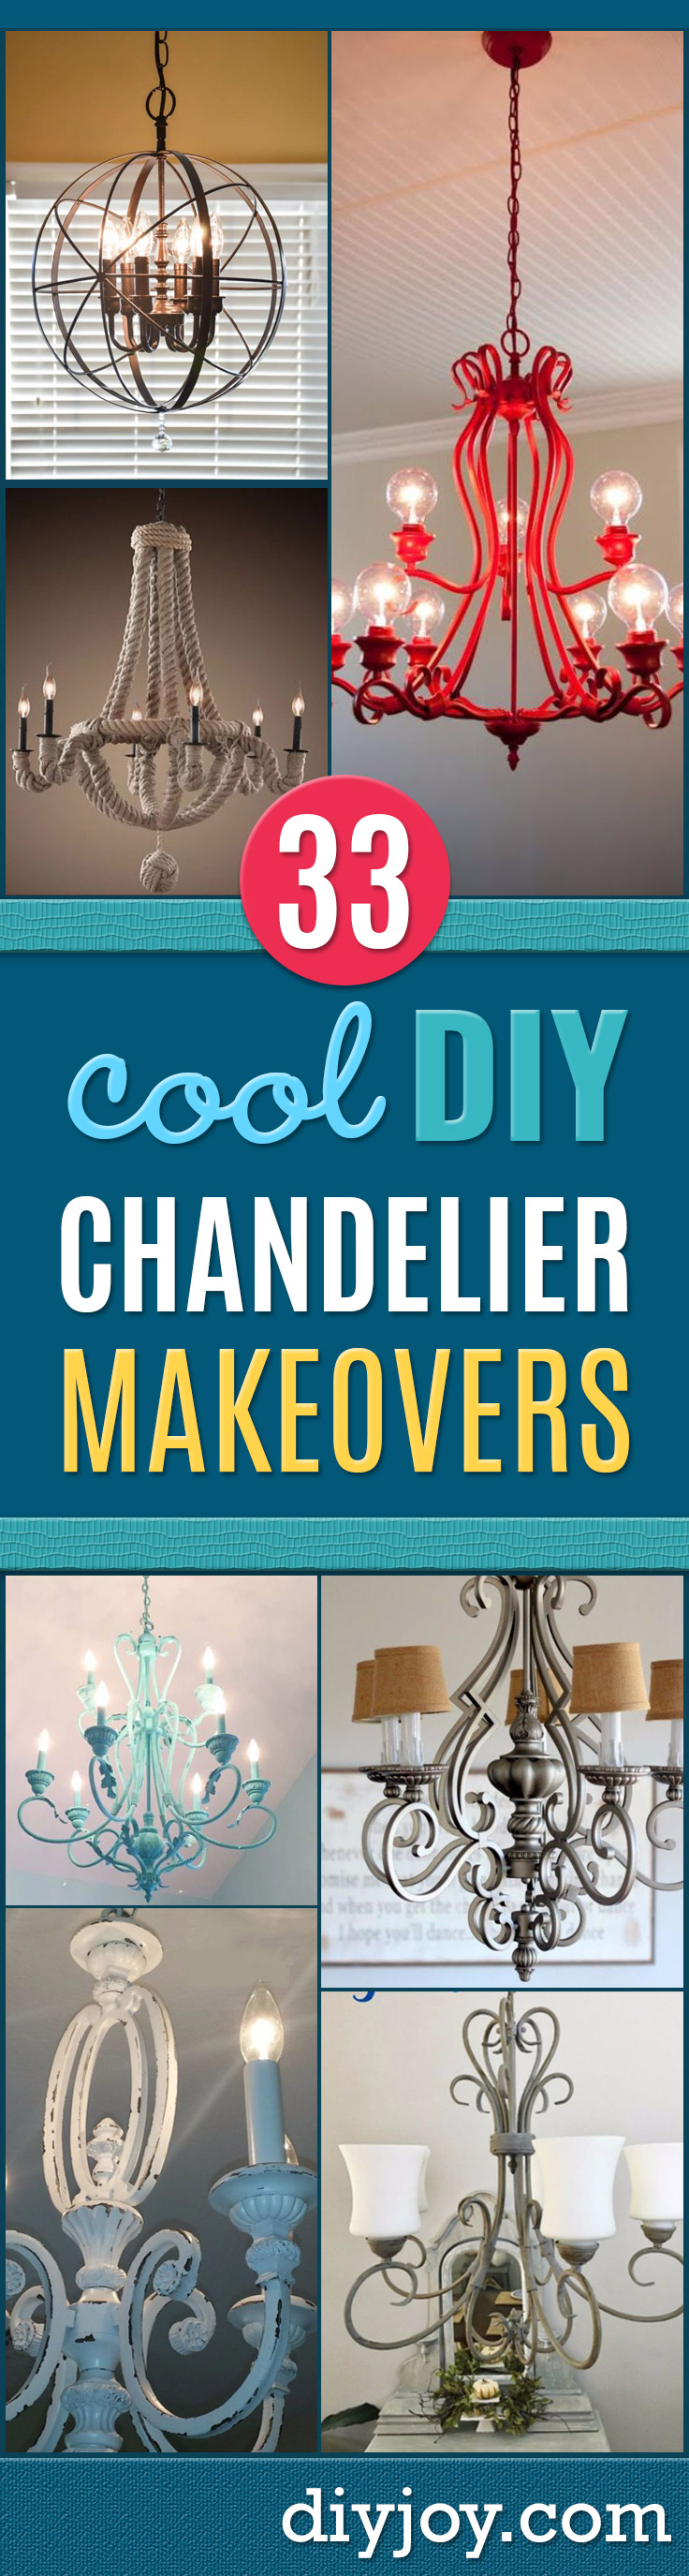 DIY Chandelier Makeovers - Easy Ideas for Old Brass, Crystal and Ugly Gold Chandelier Makeover - Cool Before and After Projects for Chandeliers - Farmhouse, Shabby Chic and Vintage Home Decor on A Budget - Living Room, Bedroom and Dining Room Idea DIY Joy Projects and Crafts